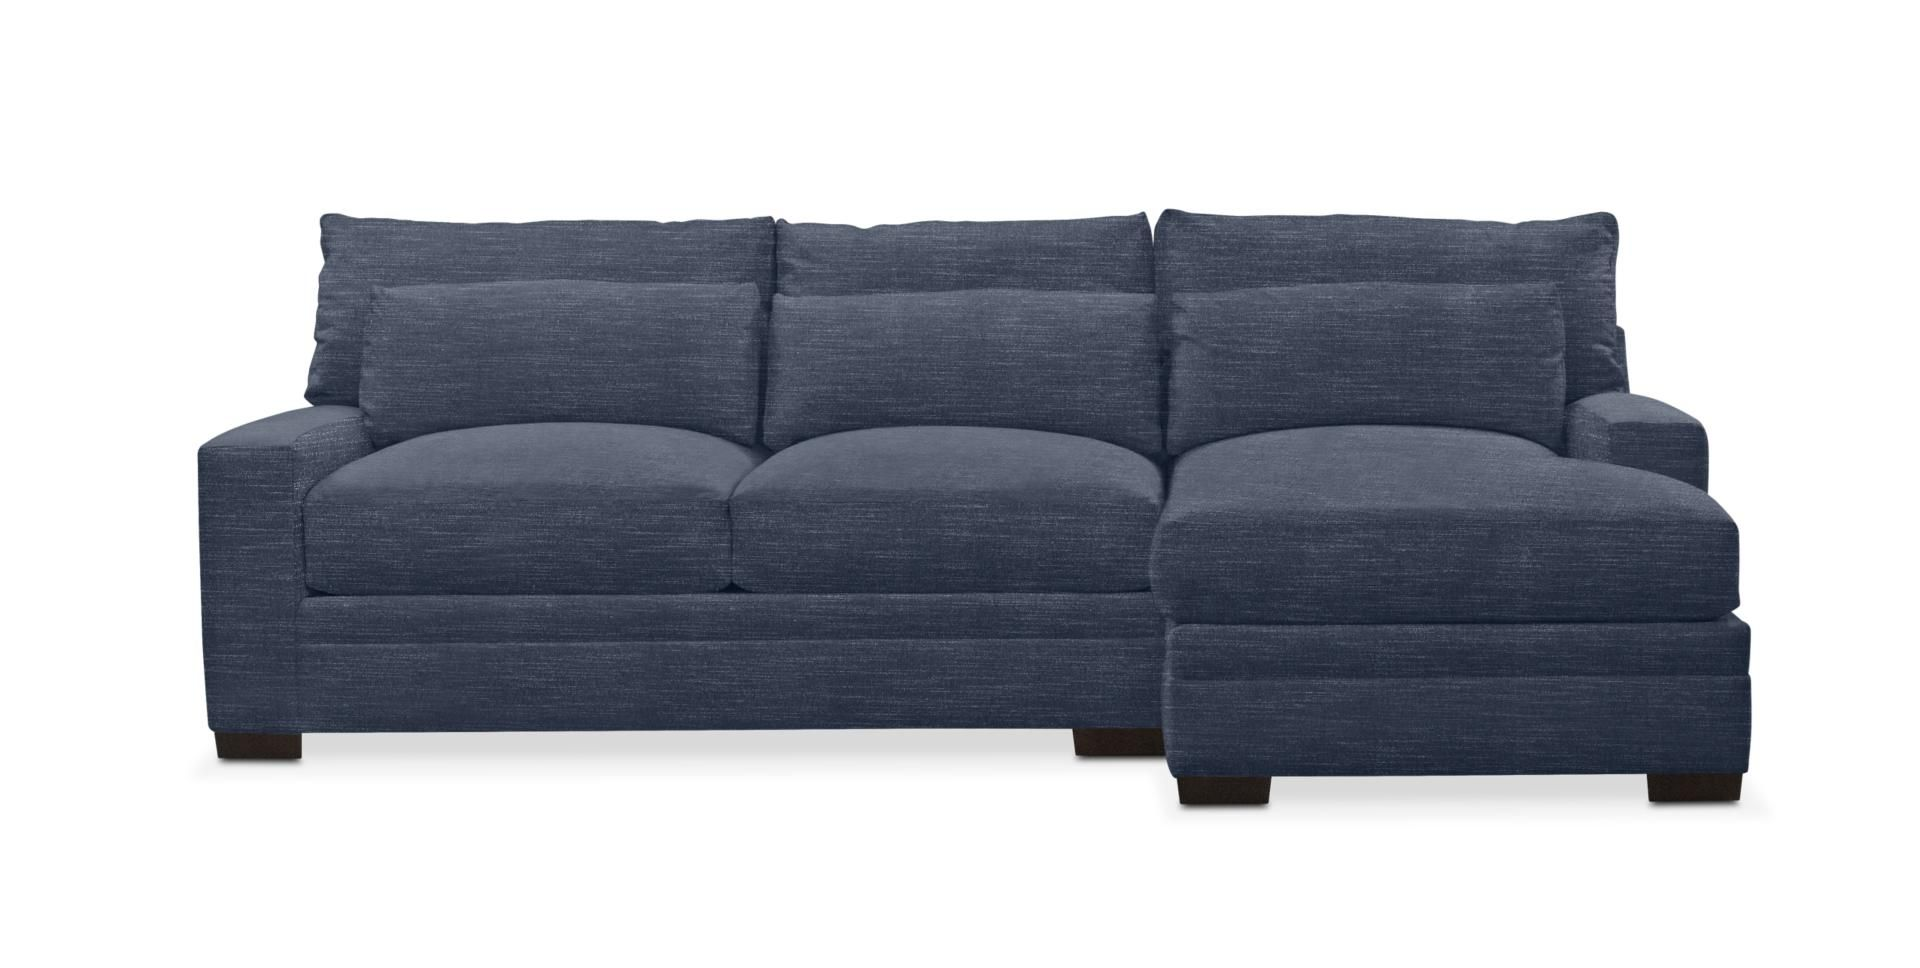 Designer Looks Winston Cumulus 2 Piece Sectional Sofa With Right Facing Chaise Curious Eclipse Blue 2 Piece Sectional Sofa Value City Furniture Living Room Seating